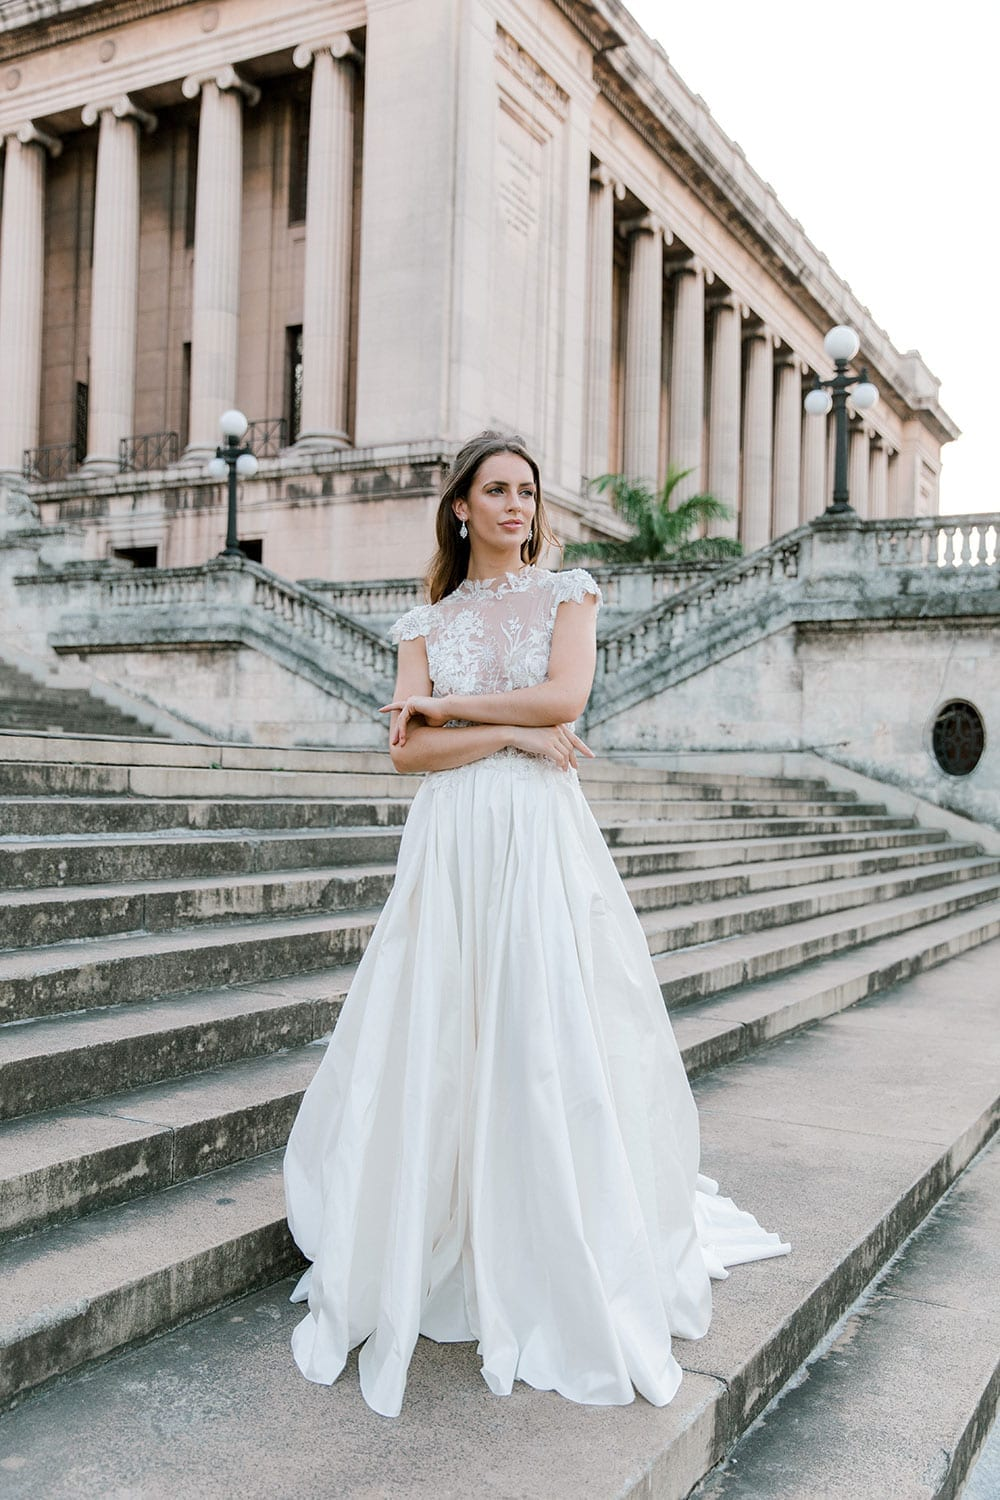 Model wearing Vinka Design Annalie Wedding Dress, a Beaded Lace High Neck Silk Wedding Gown on steps in Havana with old building in background